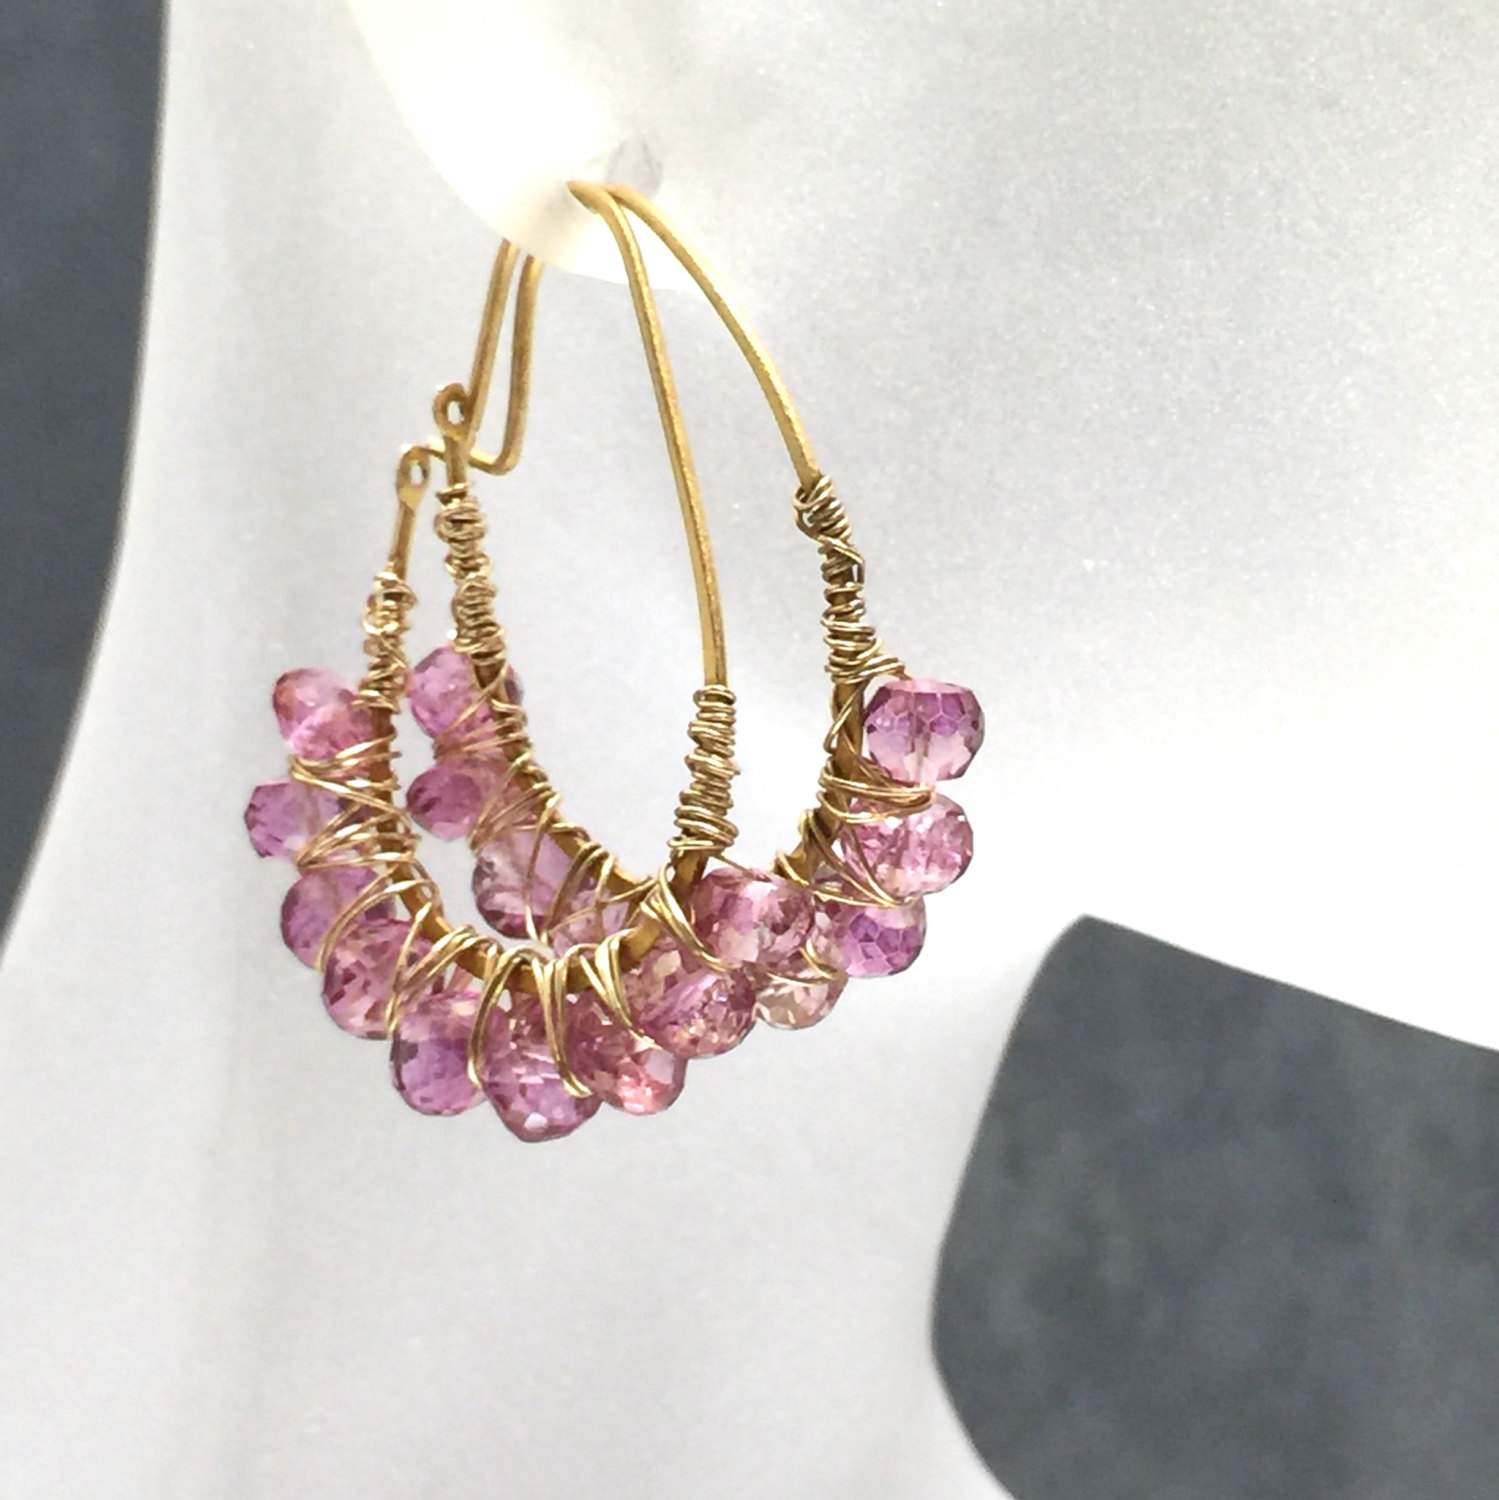 earrings hoop pink topaz 14k gf wire wrapped earrings luxe